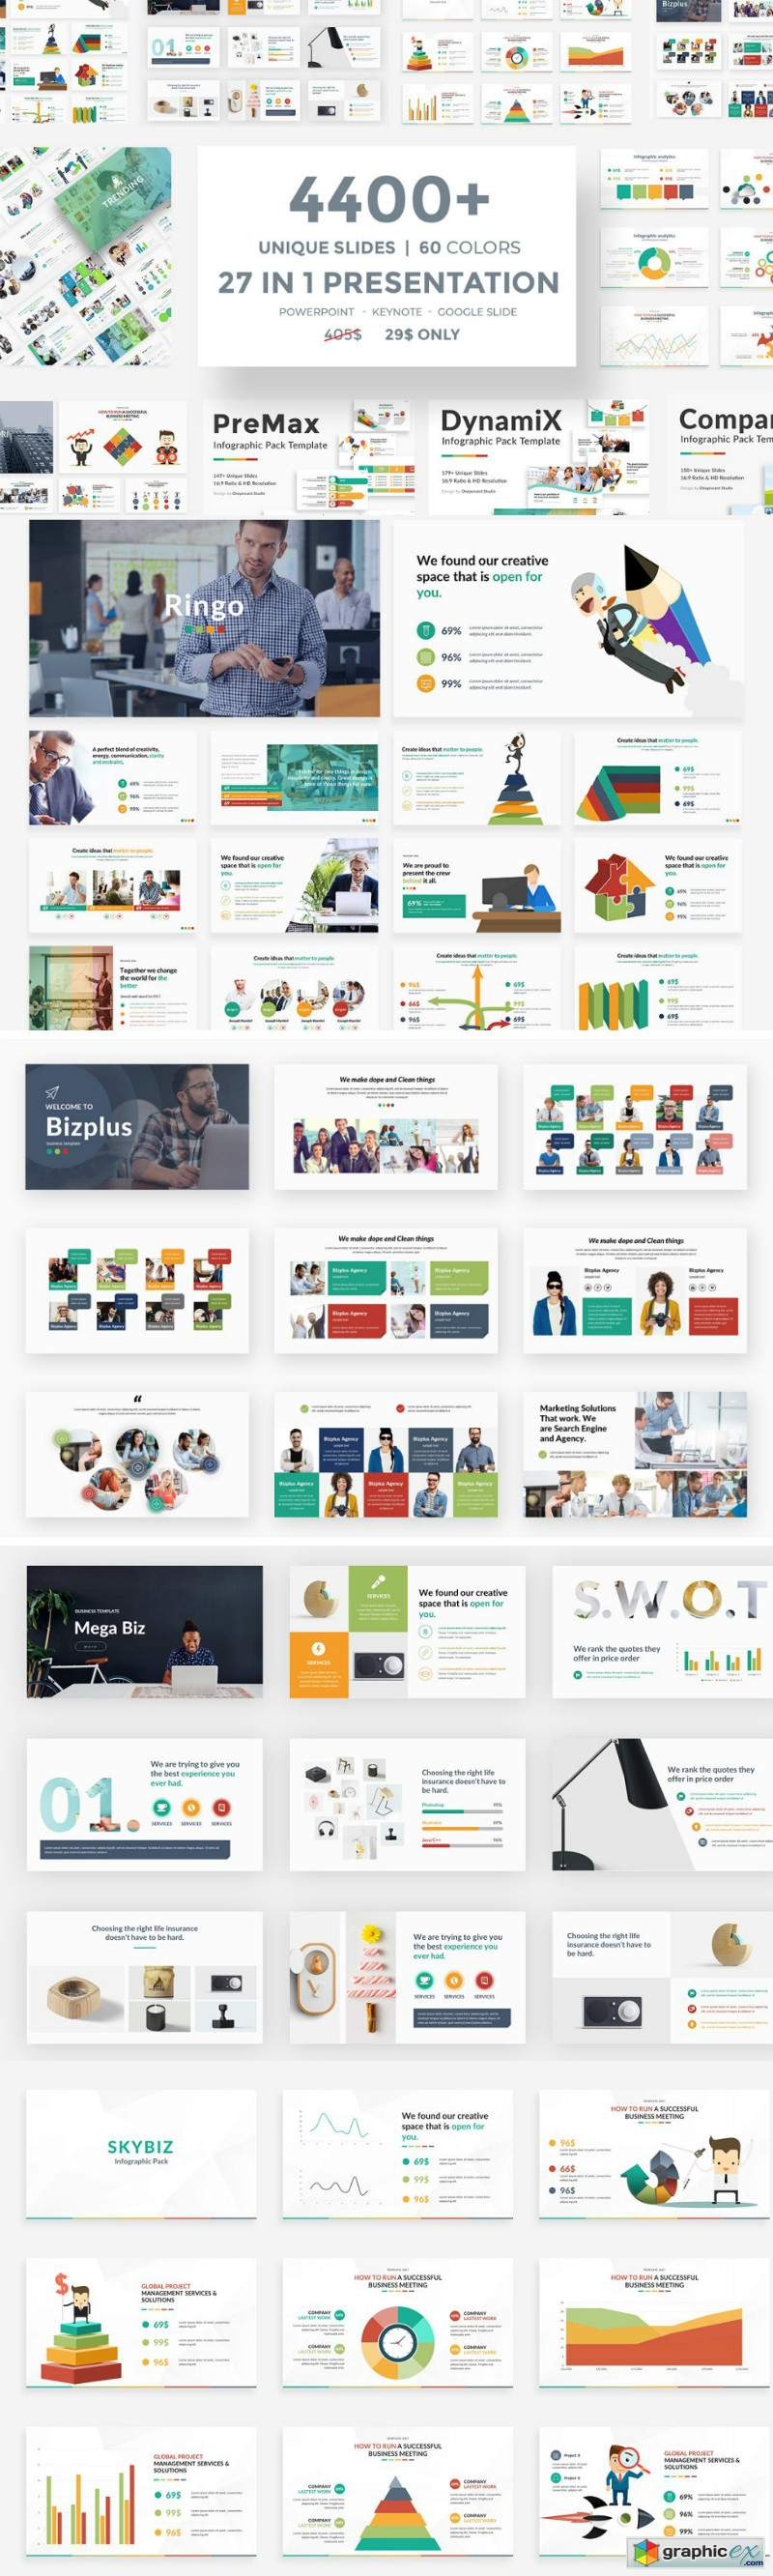 27 in 1 Presentation Bundle